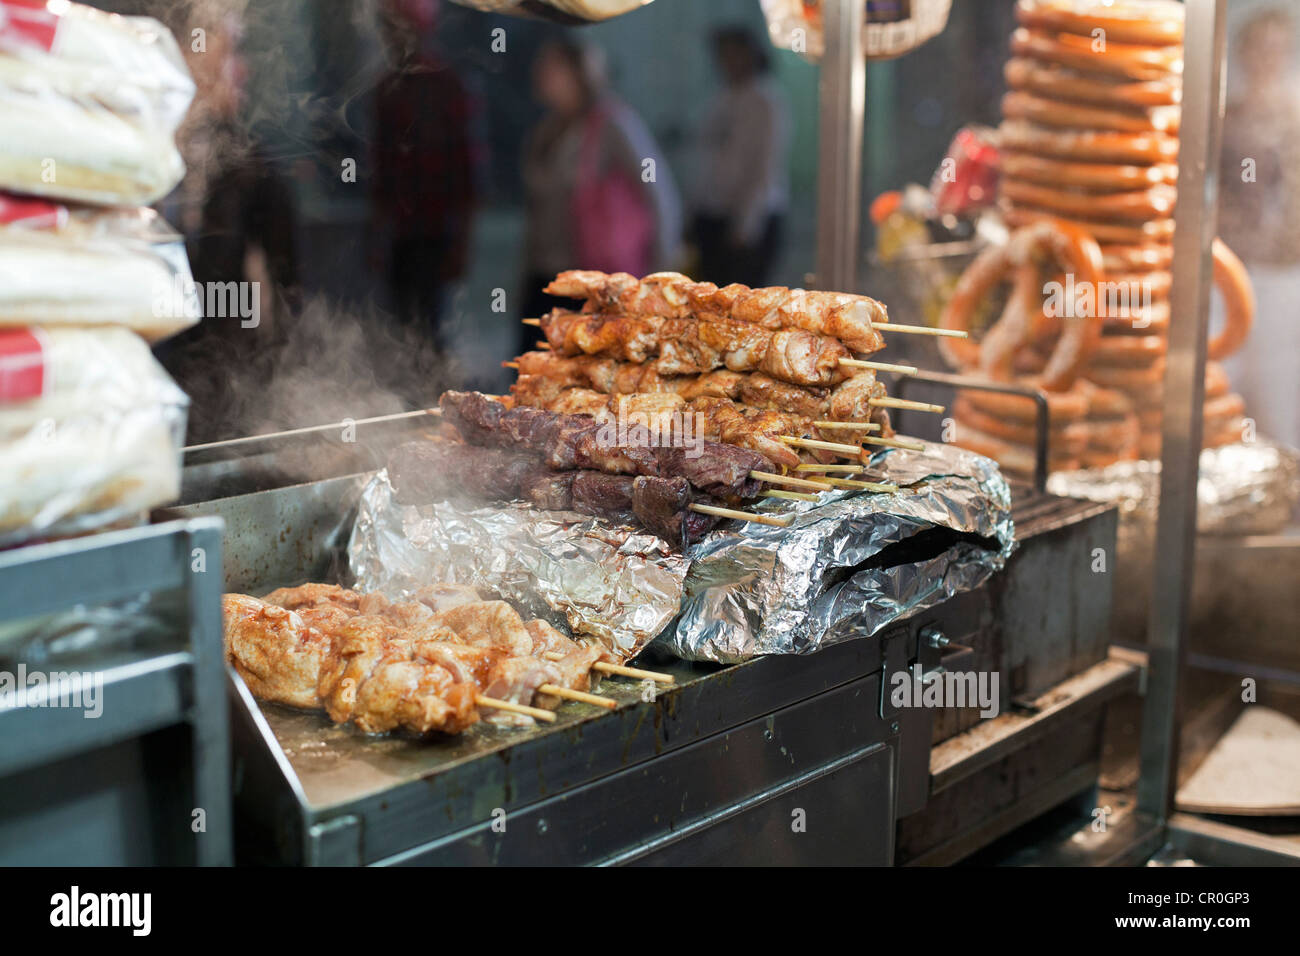 A Food Vendor Truck Serves Up Grilled Shish Kebab At Night In New York City